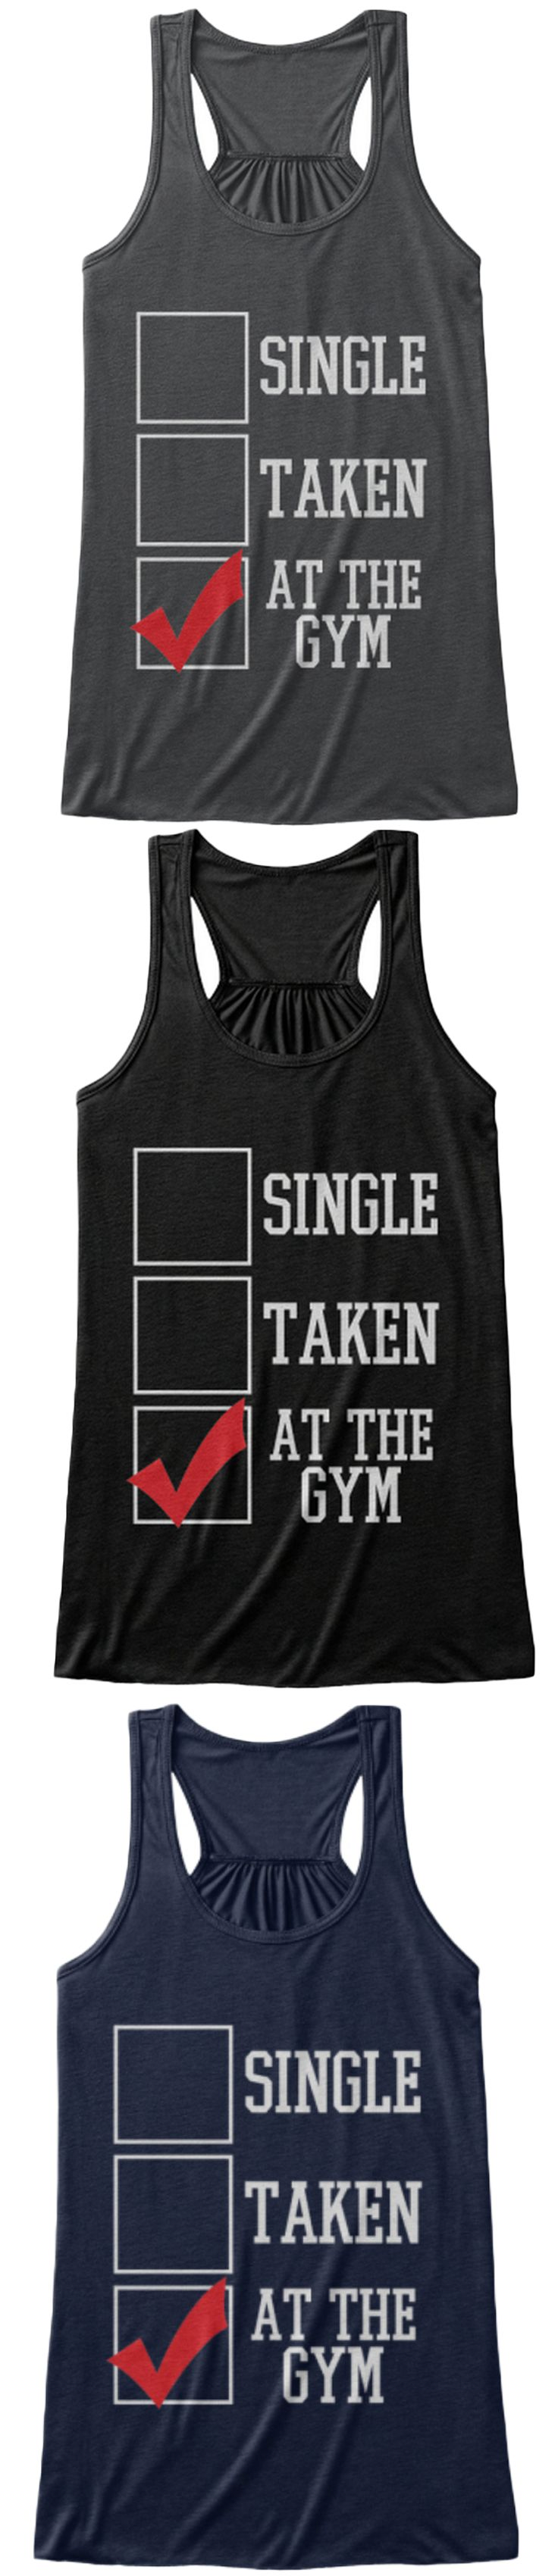 Single, Taken, I'm At The Gym | Fitness and Workout Shirt | Bella Flowy Tank Top | Click Image To Purchase